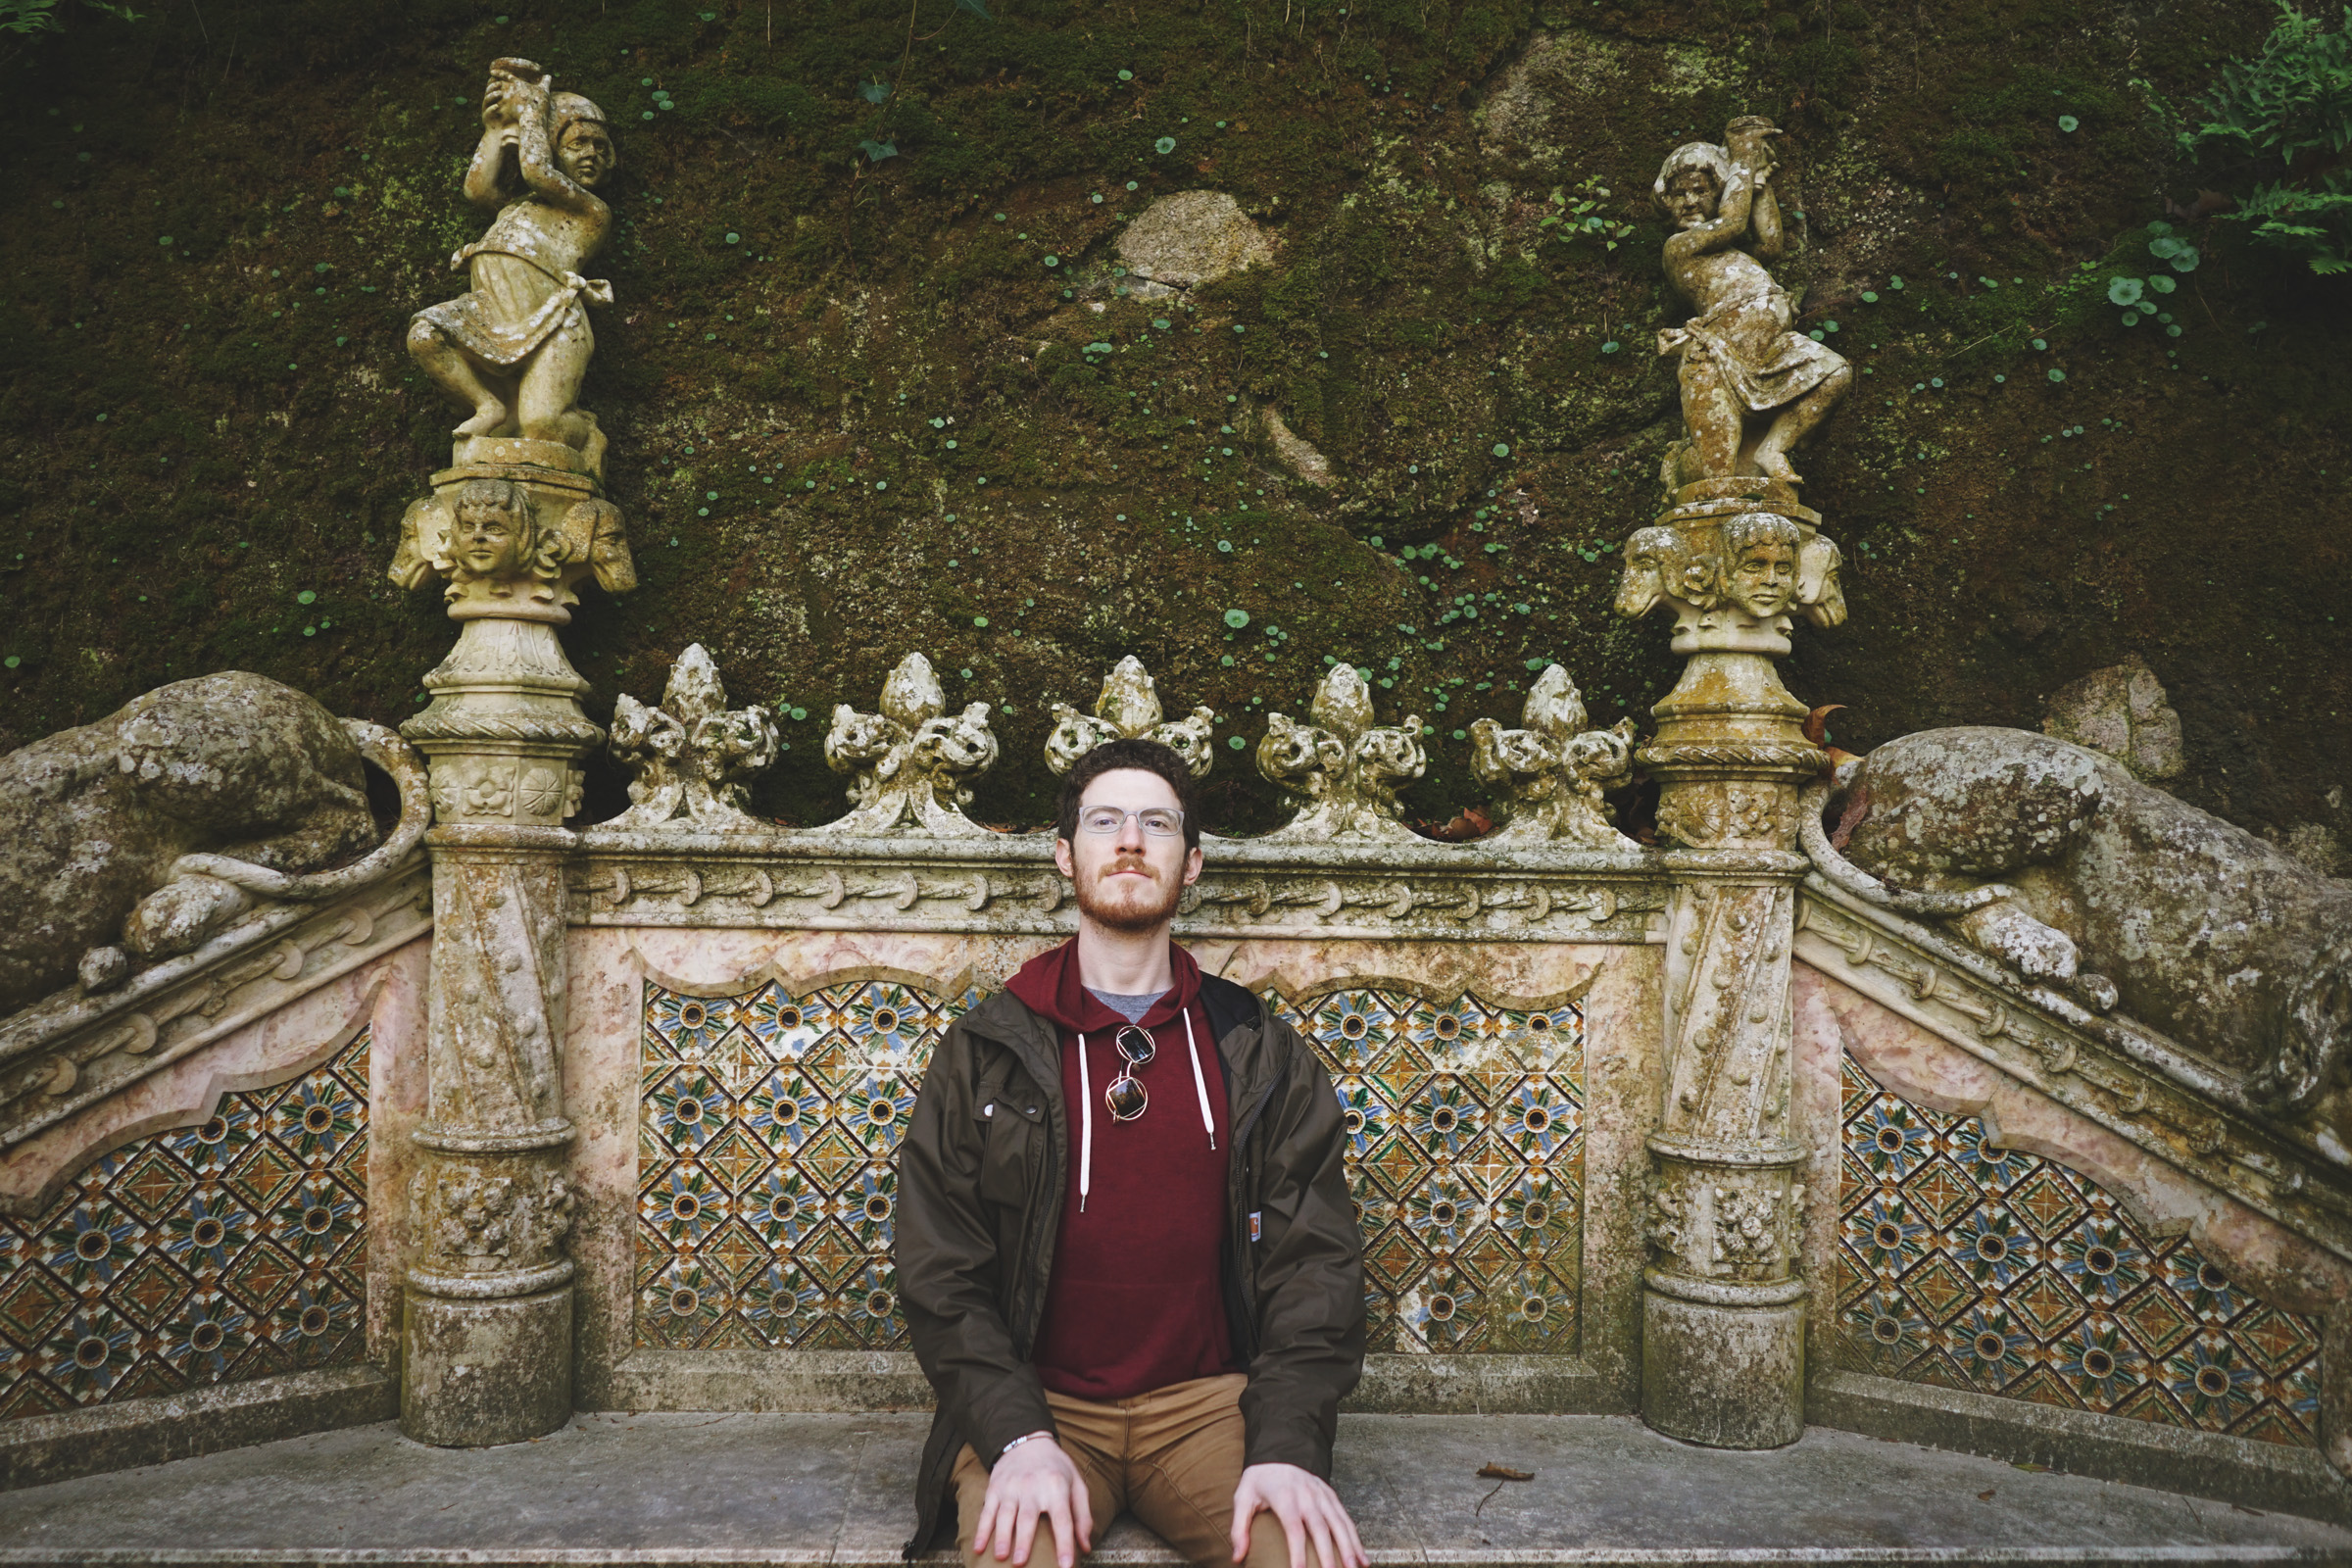 Jeremy rests on a Gothic bench decked out with dog heads, cherubs, and lions (located between the lake and the Loggia).